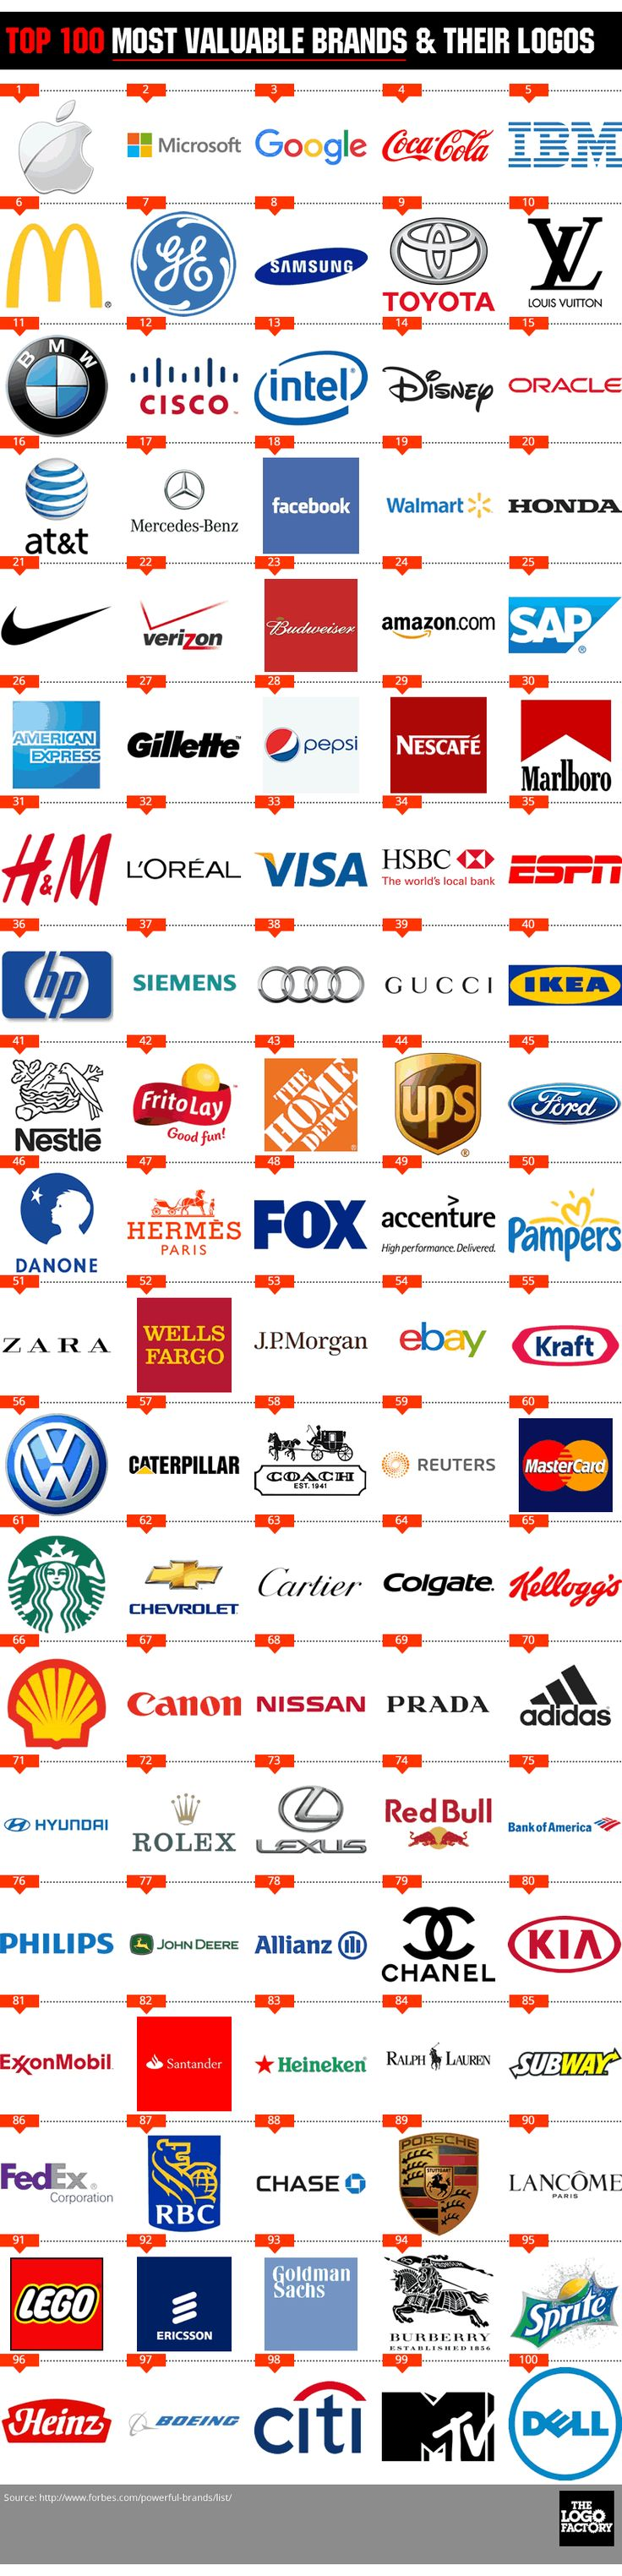 The 25 most valuable brands worldwide 2019 | Statistic